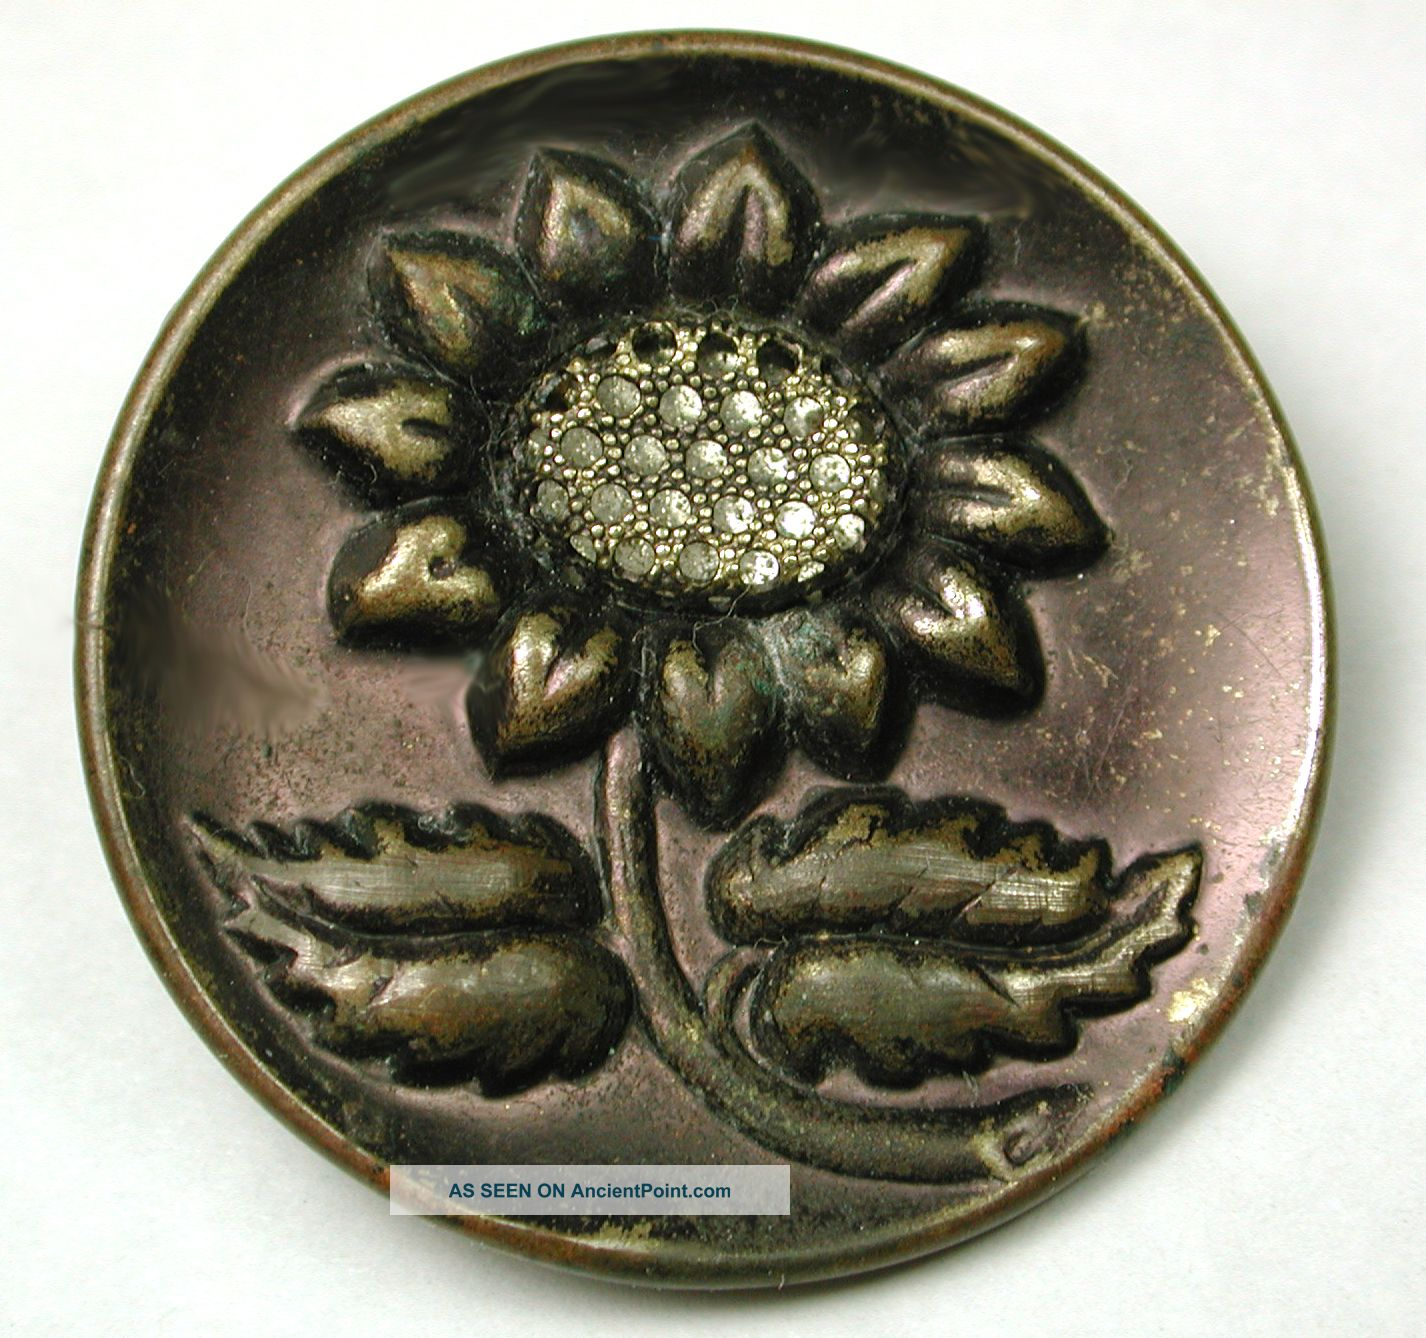 Antique Brass Button Pictorial Floral Design Lg Sz Buttons photo